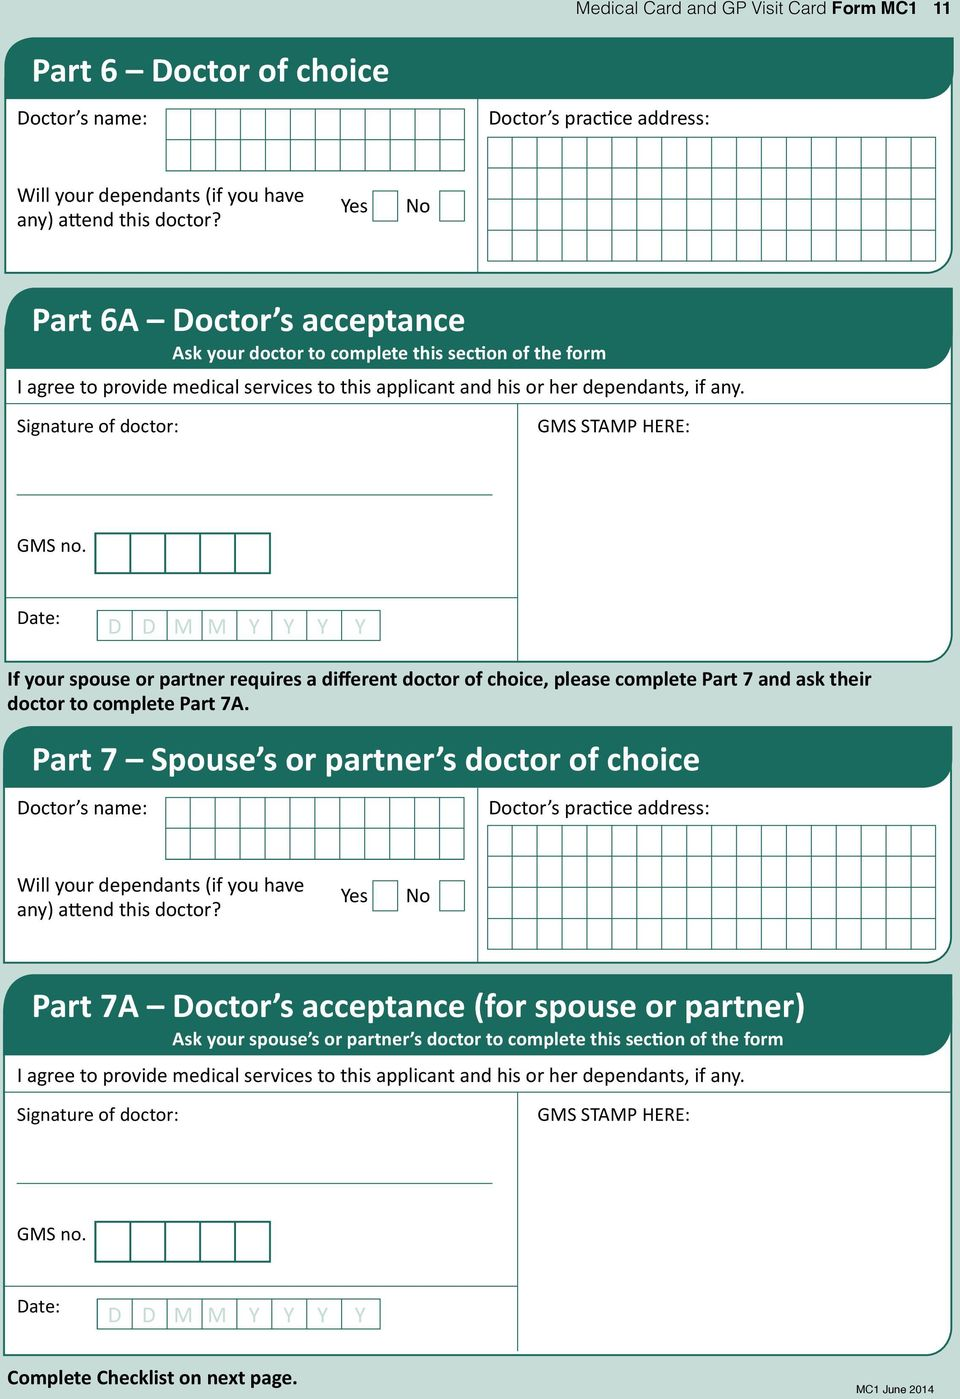 Signature of doctor: GMS STAMP HR: GMS no. ate: If your spouse or partner requires a different doctor of choice, please complete Part 7 and ask their doctor to complete Part 7A.